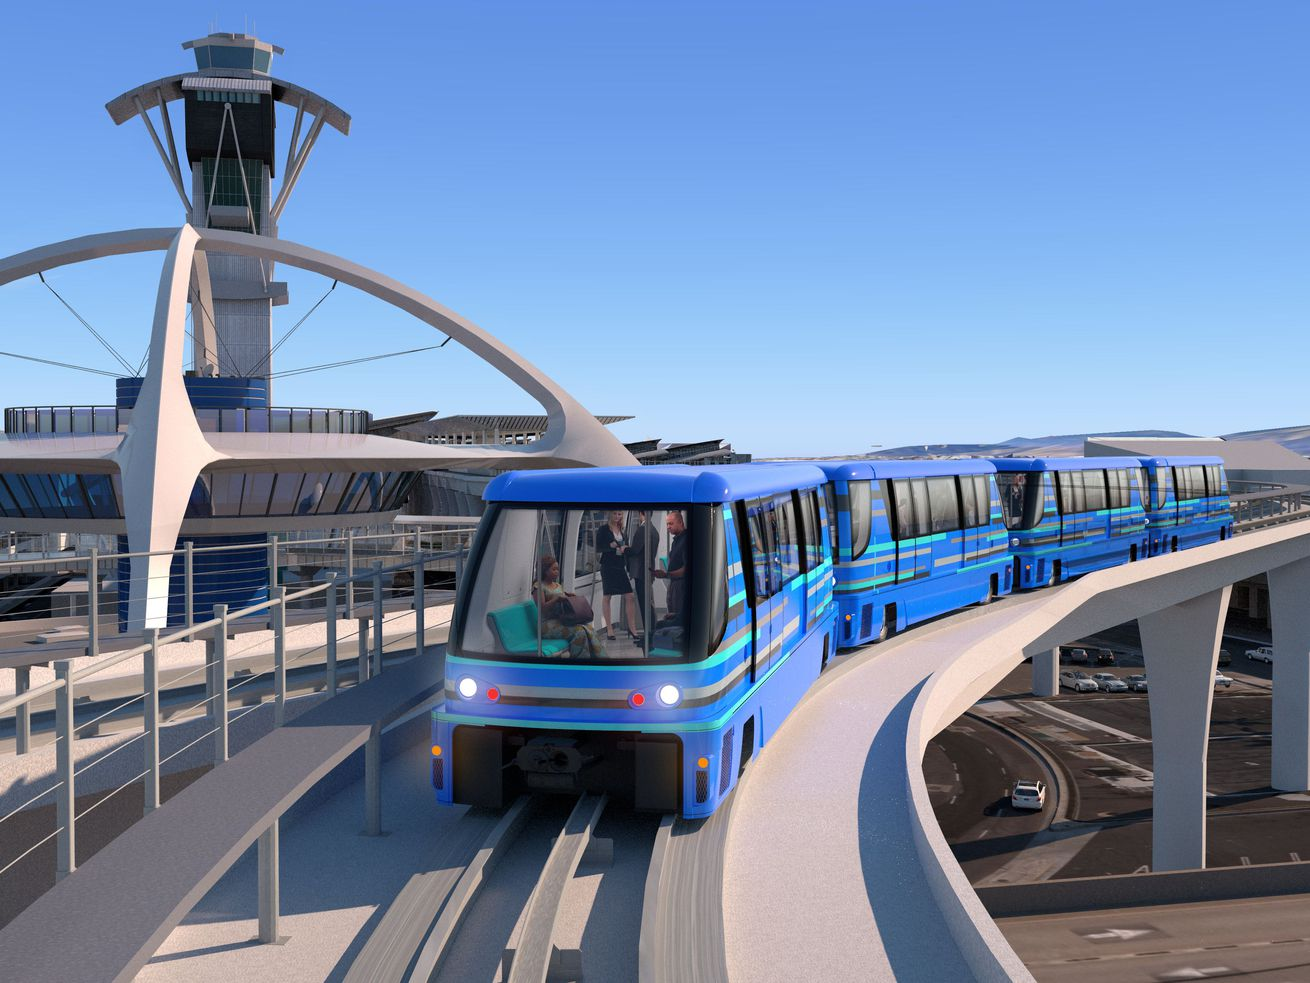 The free people mover would connect LAX terminals to Metro's Crenshaw/LAX Line as well as a forthcoming rental car facility.